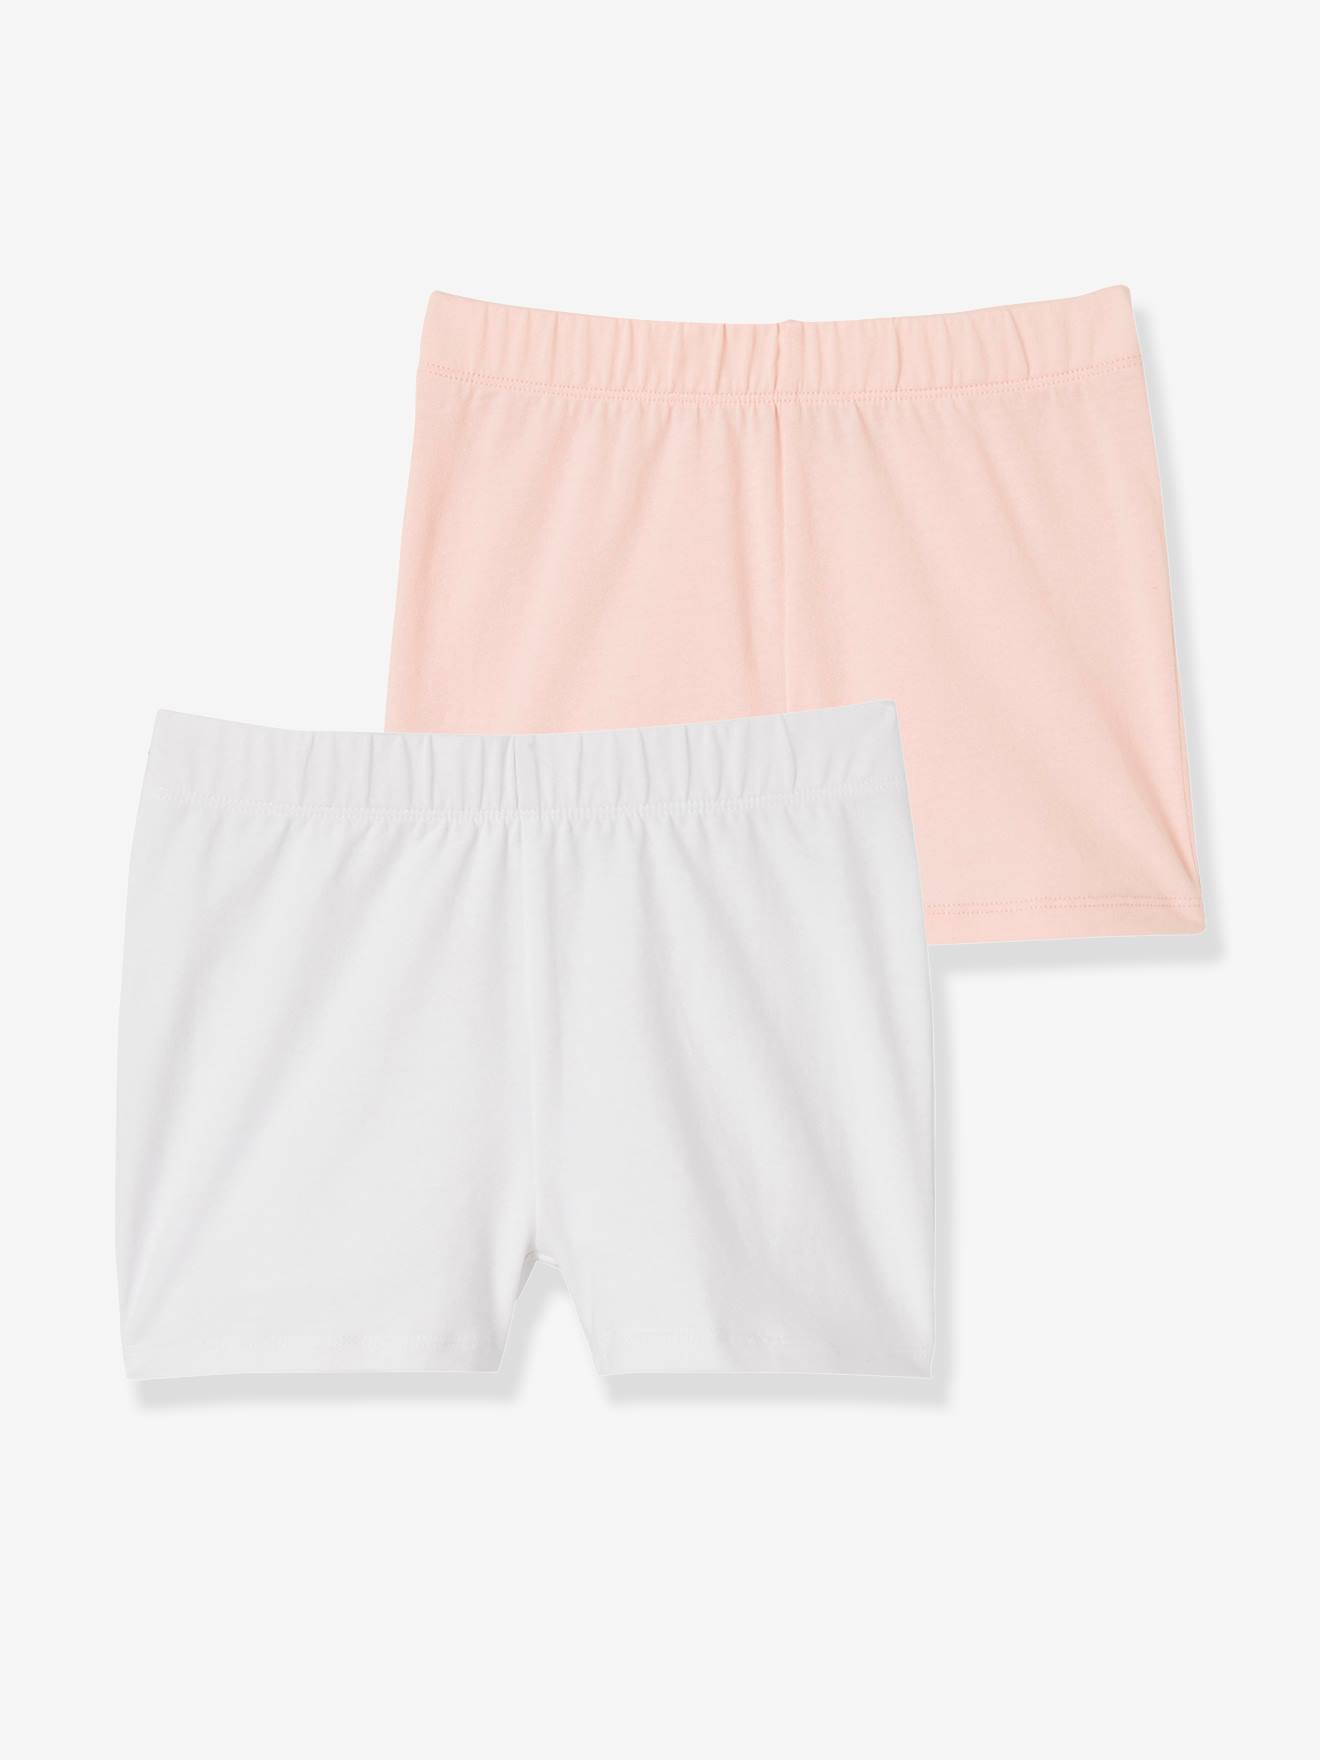 Lot de 2 shorts fille à porter sous robe